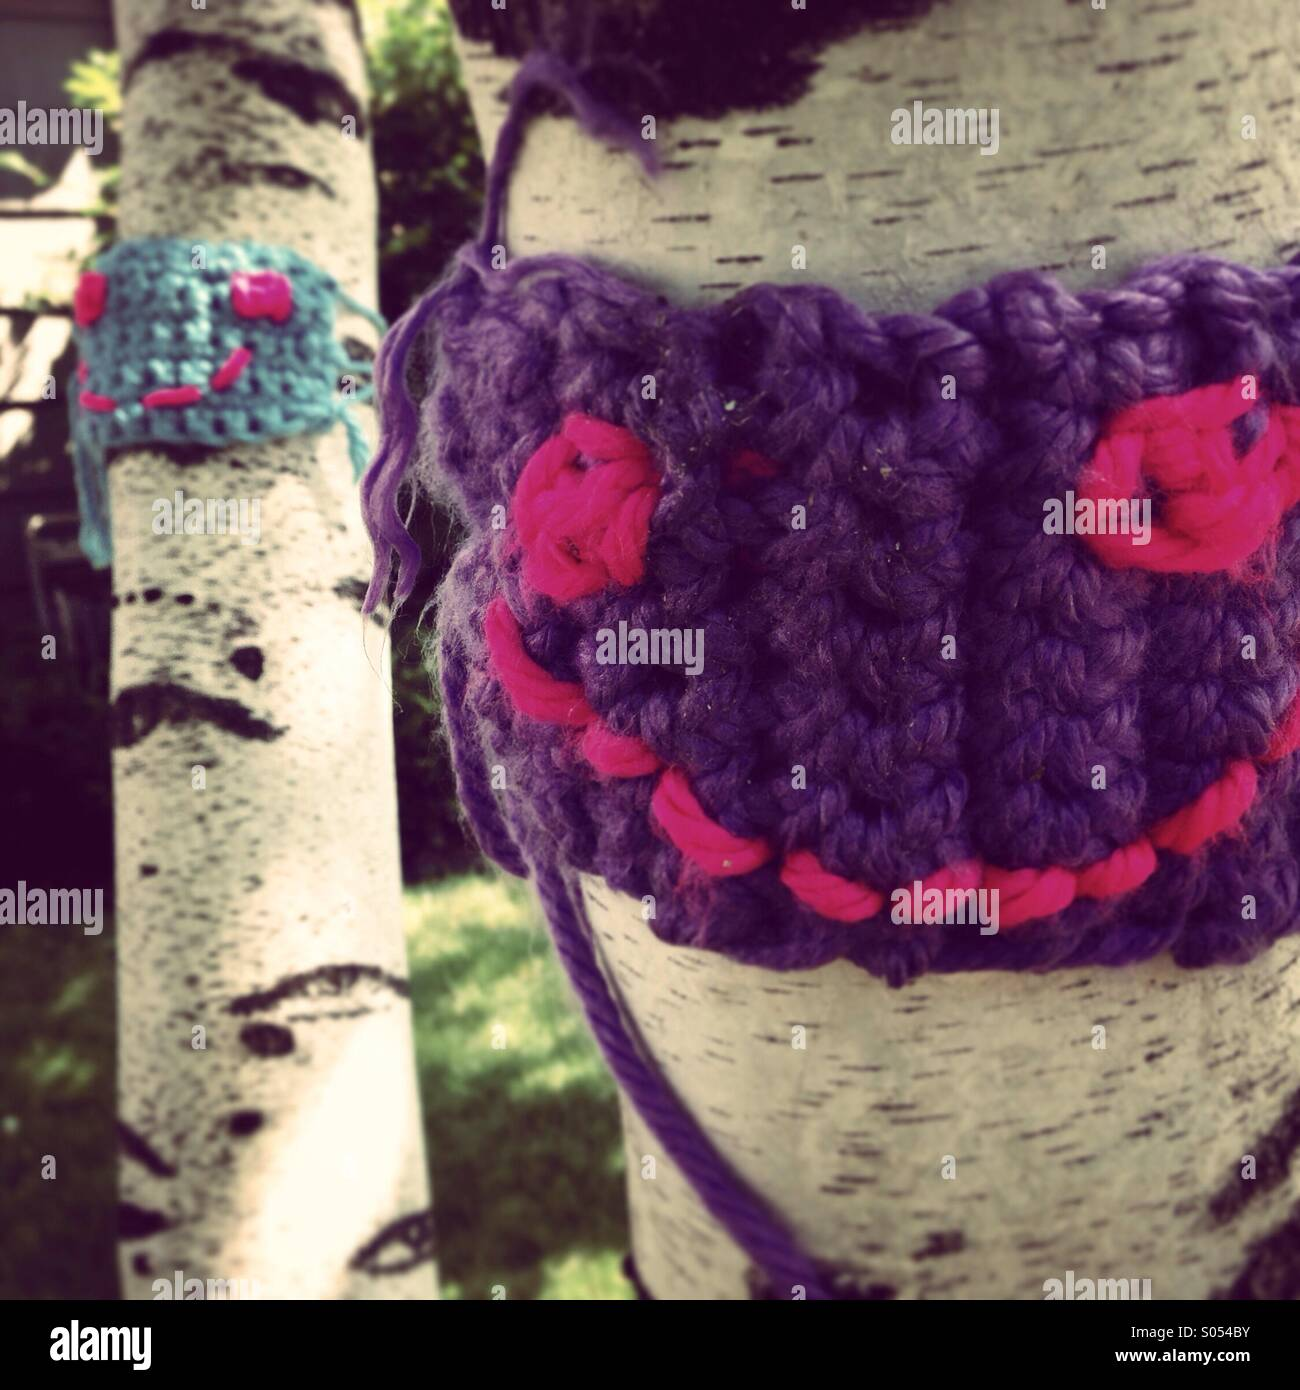 Yarn bomb on birch tree. - Stock Image